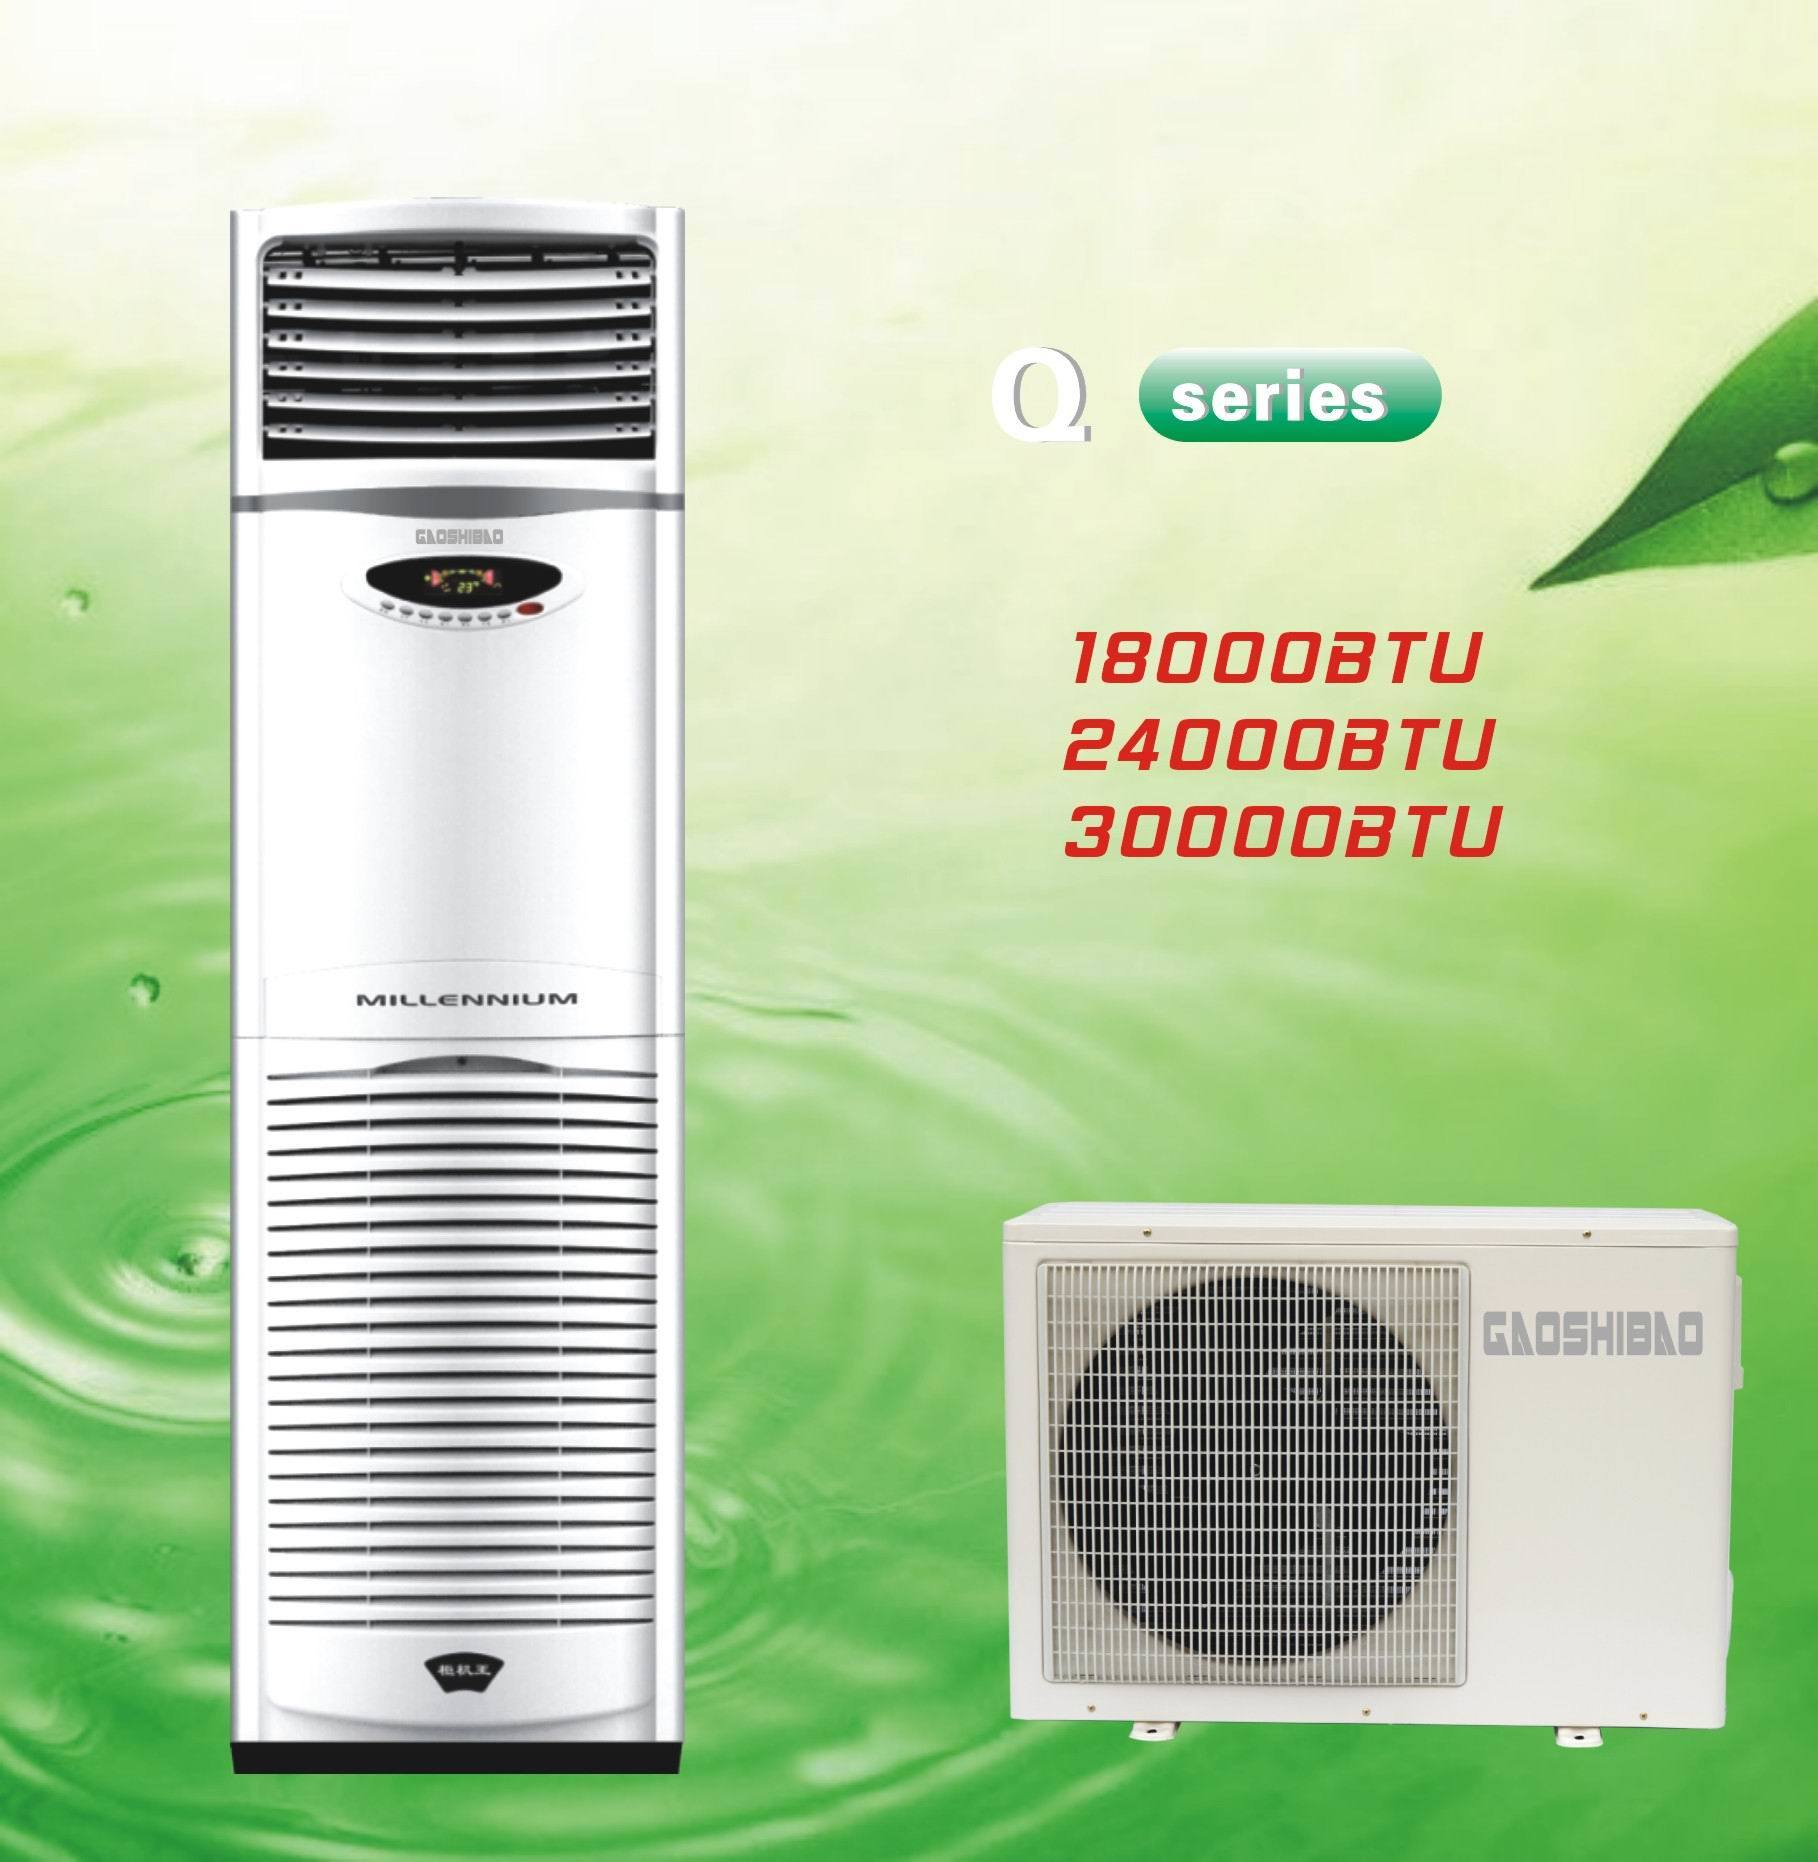 #B32218 China R22 Gas Standing Air Conditioner Units China Stand  Best 2243 Different Types Of Ac Units photos with 1818x1862 px on helpvideos.info - Air Conditioners, Air Coolers and more